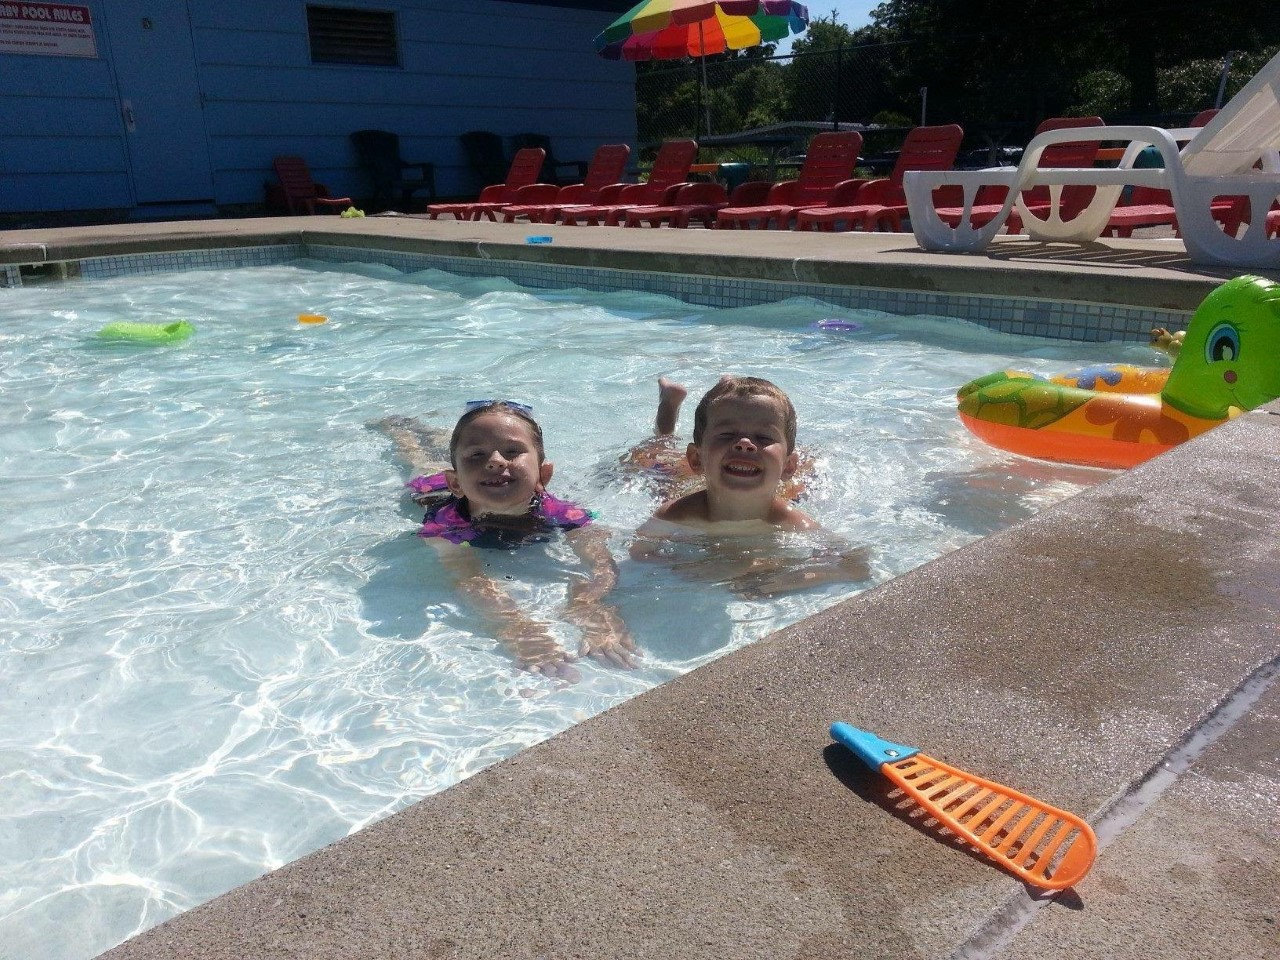 Members enjoy the pool at the Twyckenham  Hills Community Club. // Photo provided